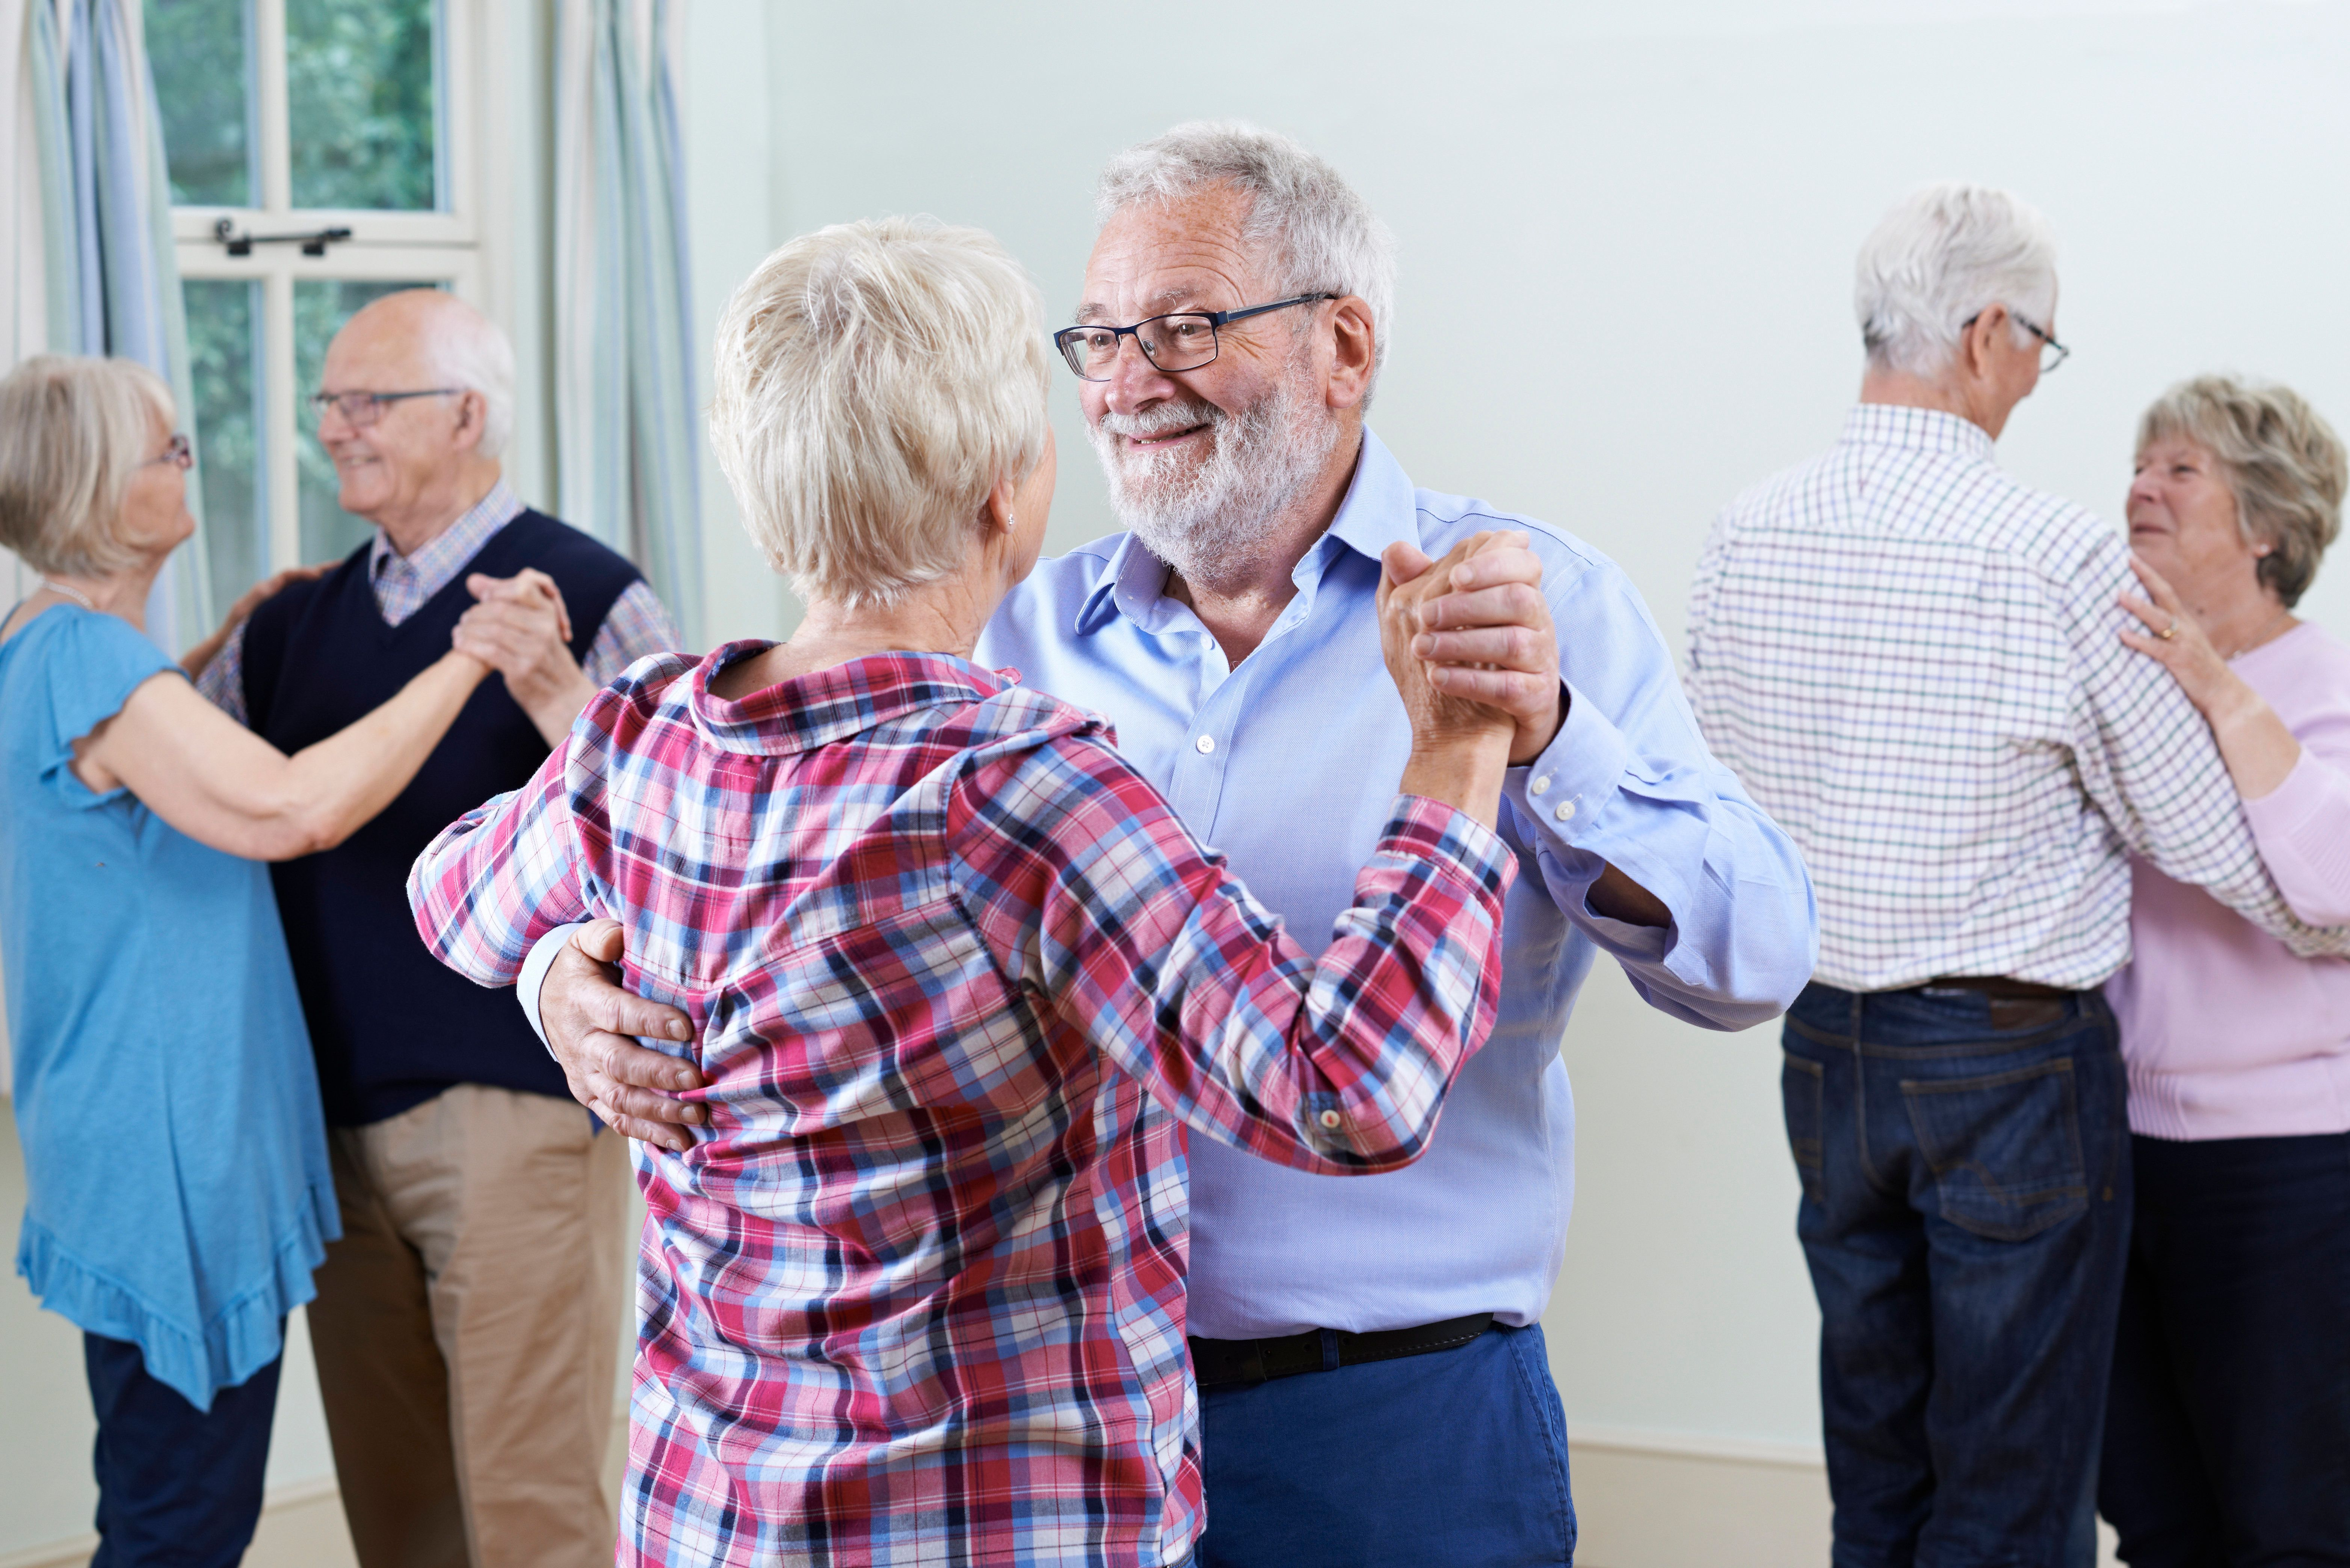 Dance lessons appear to help brain health because they combine exercise, social interaction and learning.